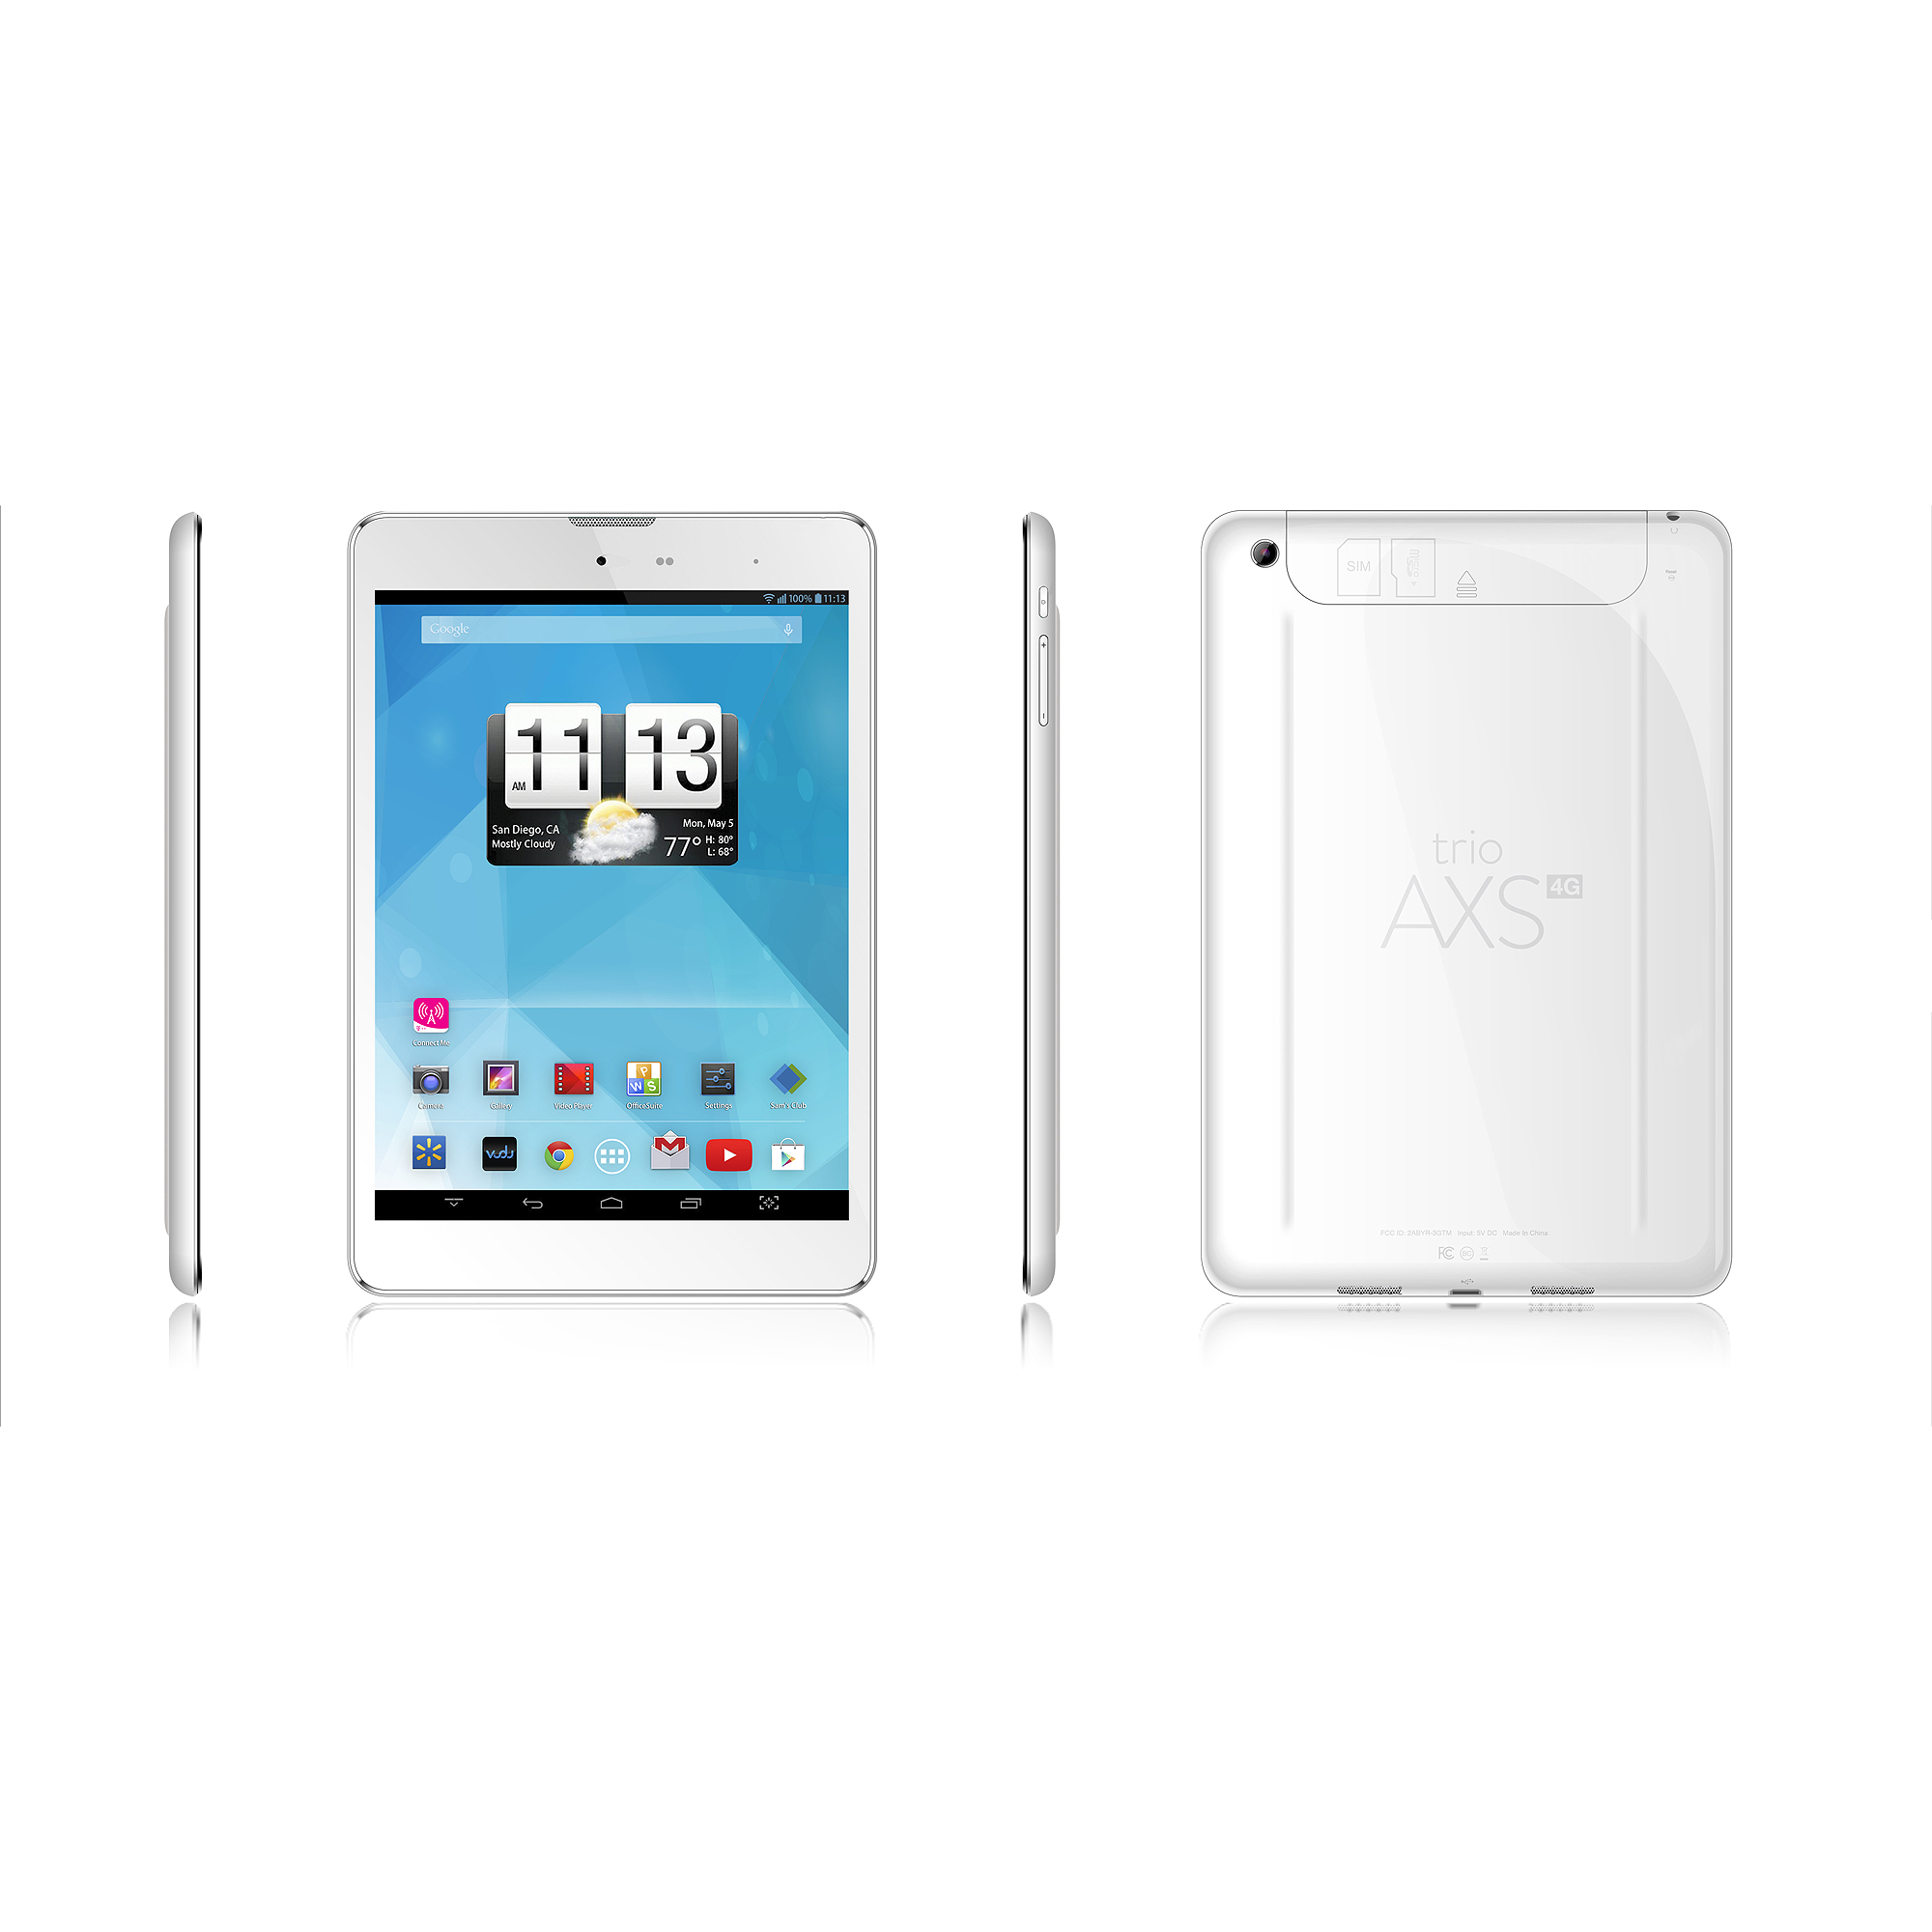 Trio axs 4g 785 tablet with 16gb memory white walmart fandeluxe Image collections